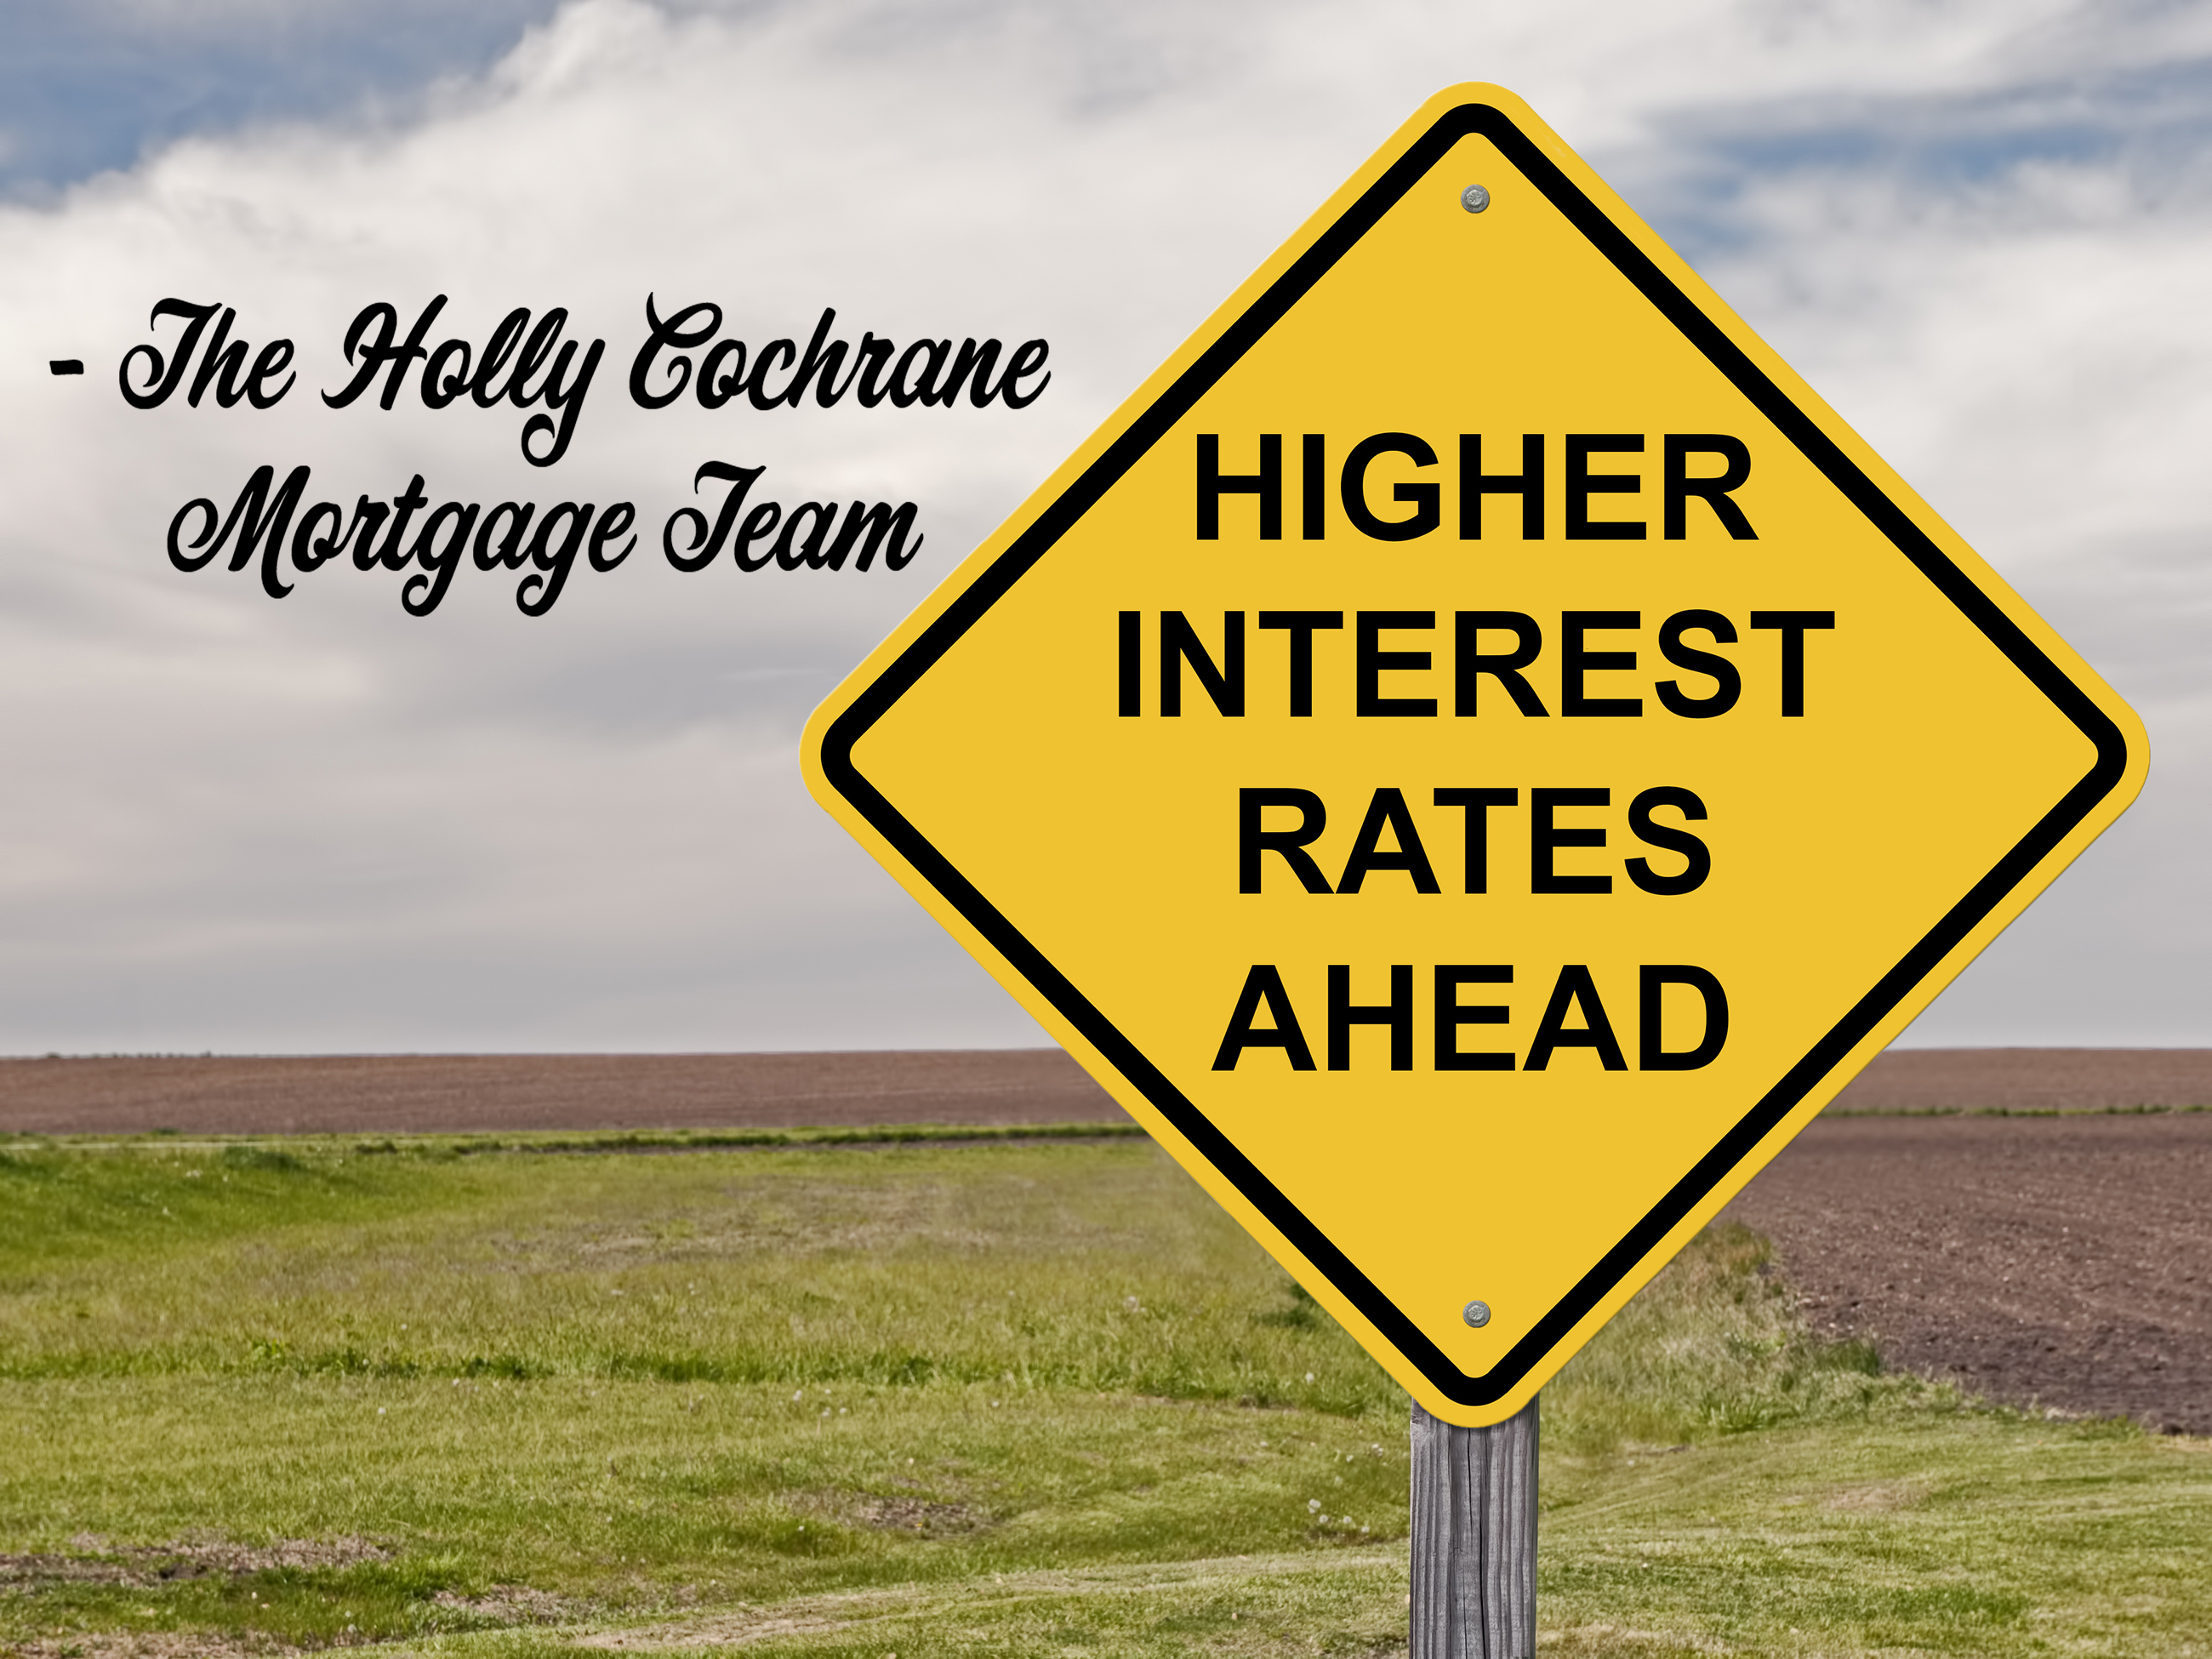 Risk of Rising Rates - Call Us Now!